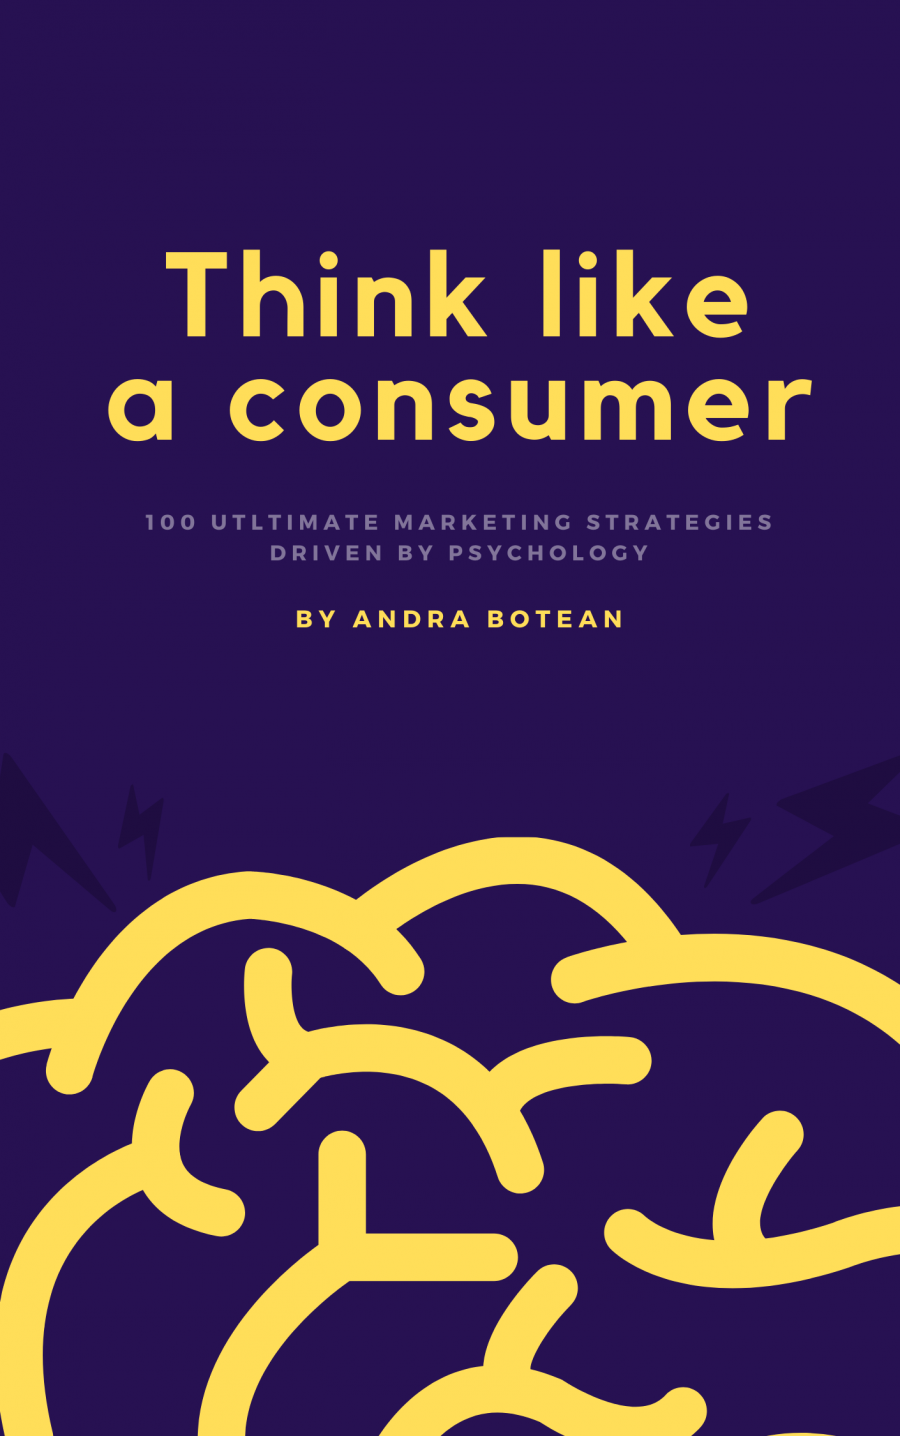 """Ebook """"Think like a consumer: 100 ultimate marketing strategies driven by psychology"""""""